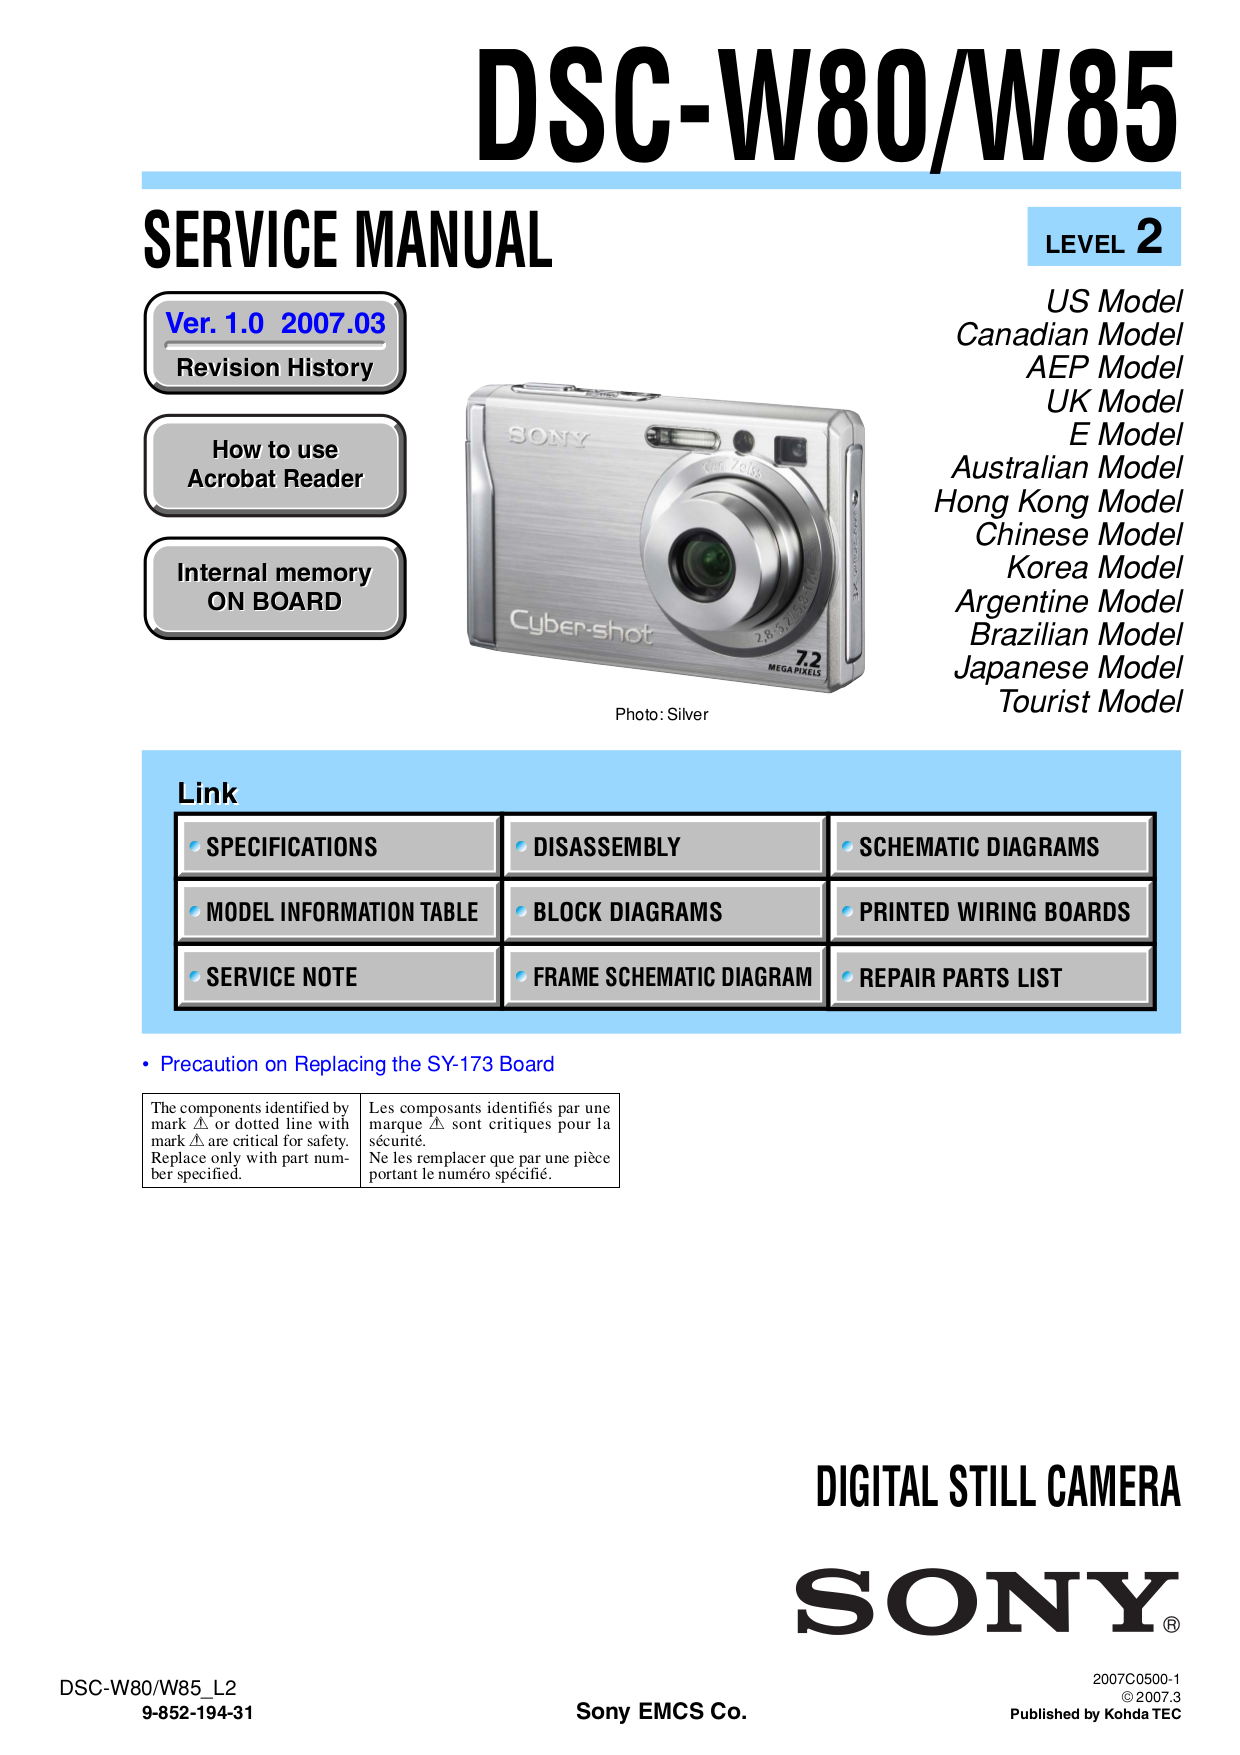 download free pdf for sony cybershot cyber shot dsc w80 digital rh umlib com sony cyber shot dsc w80 manuale sony cyber shot dsc wx80 manual